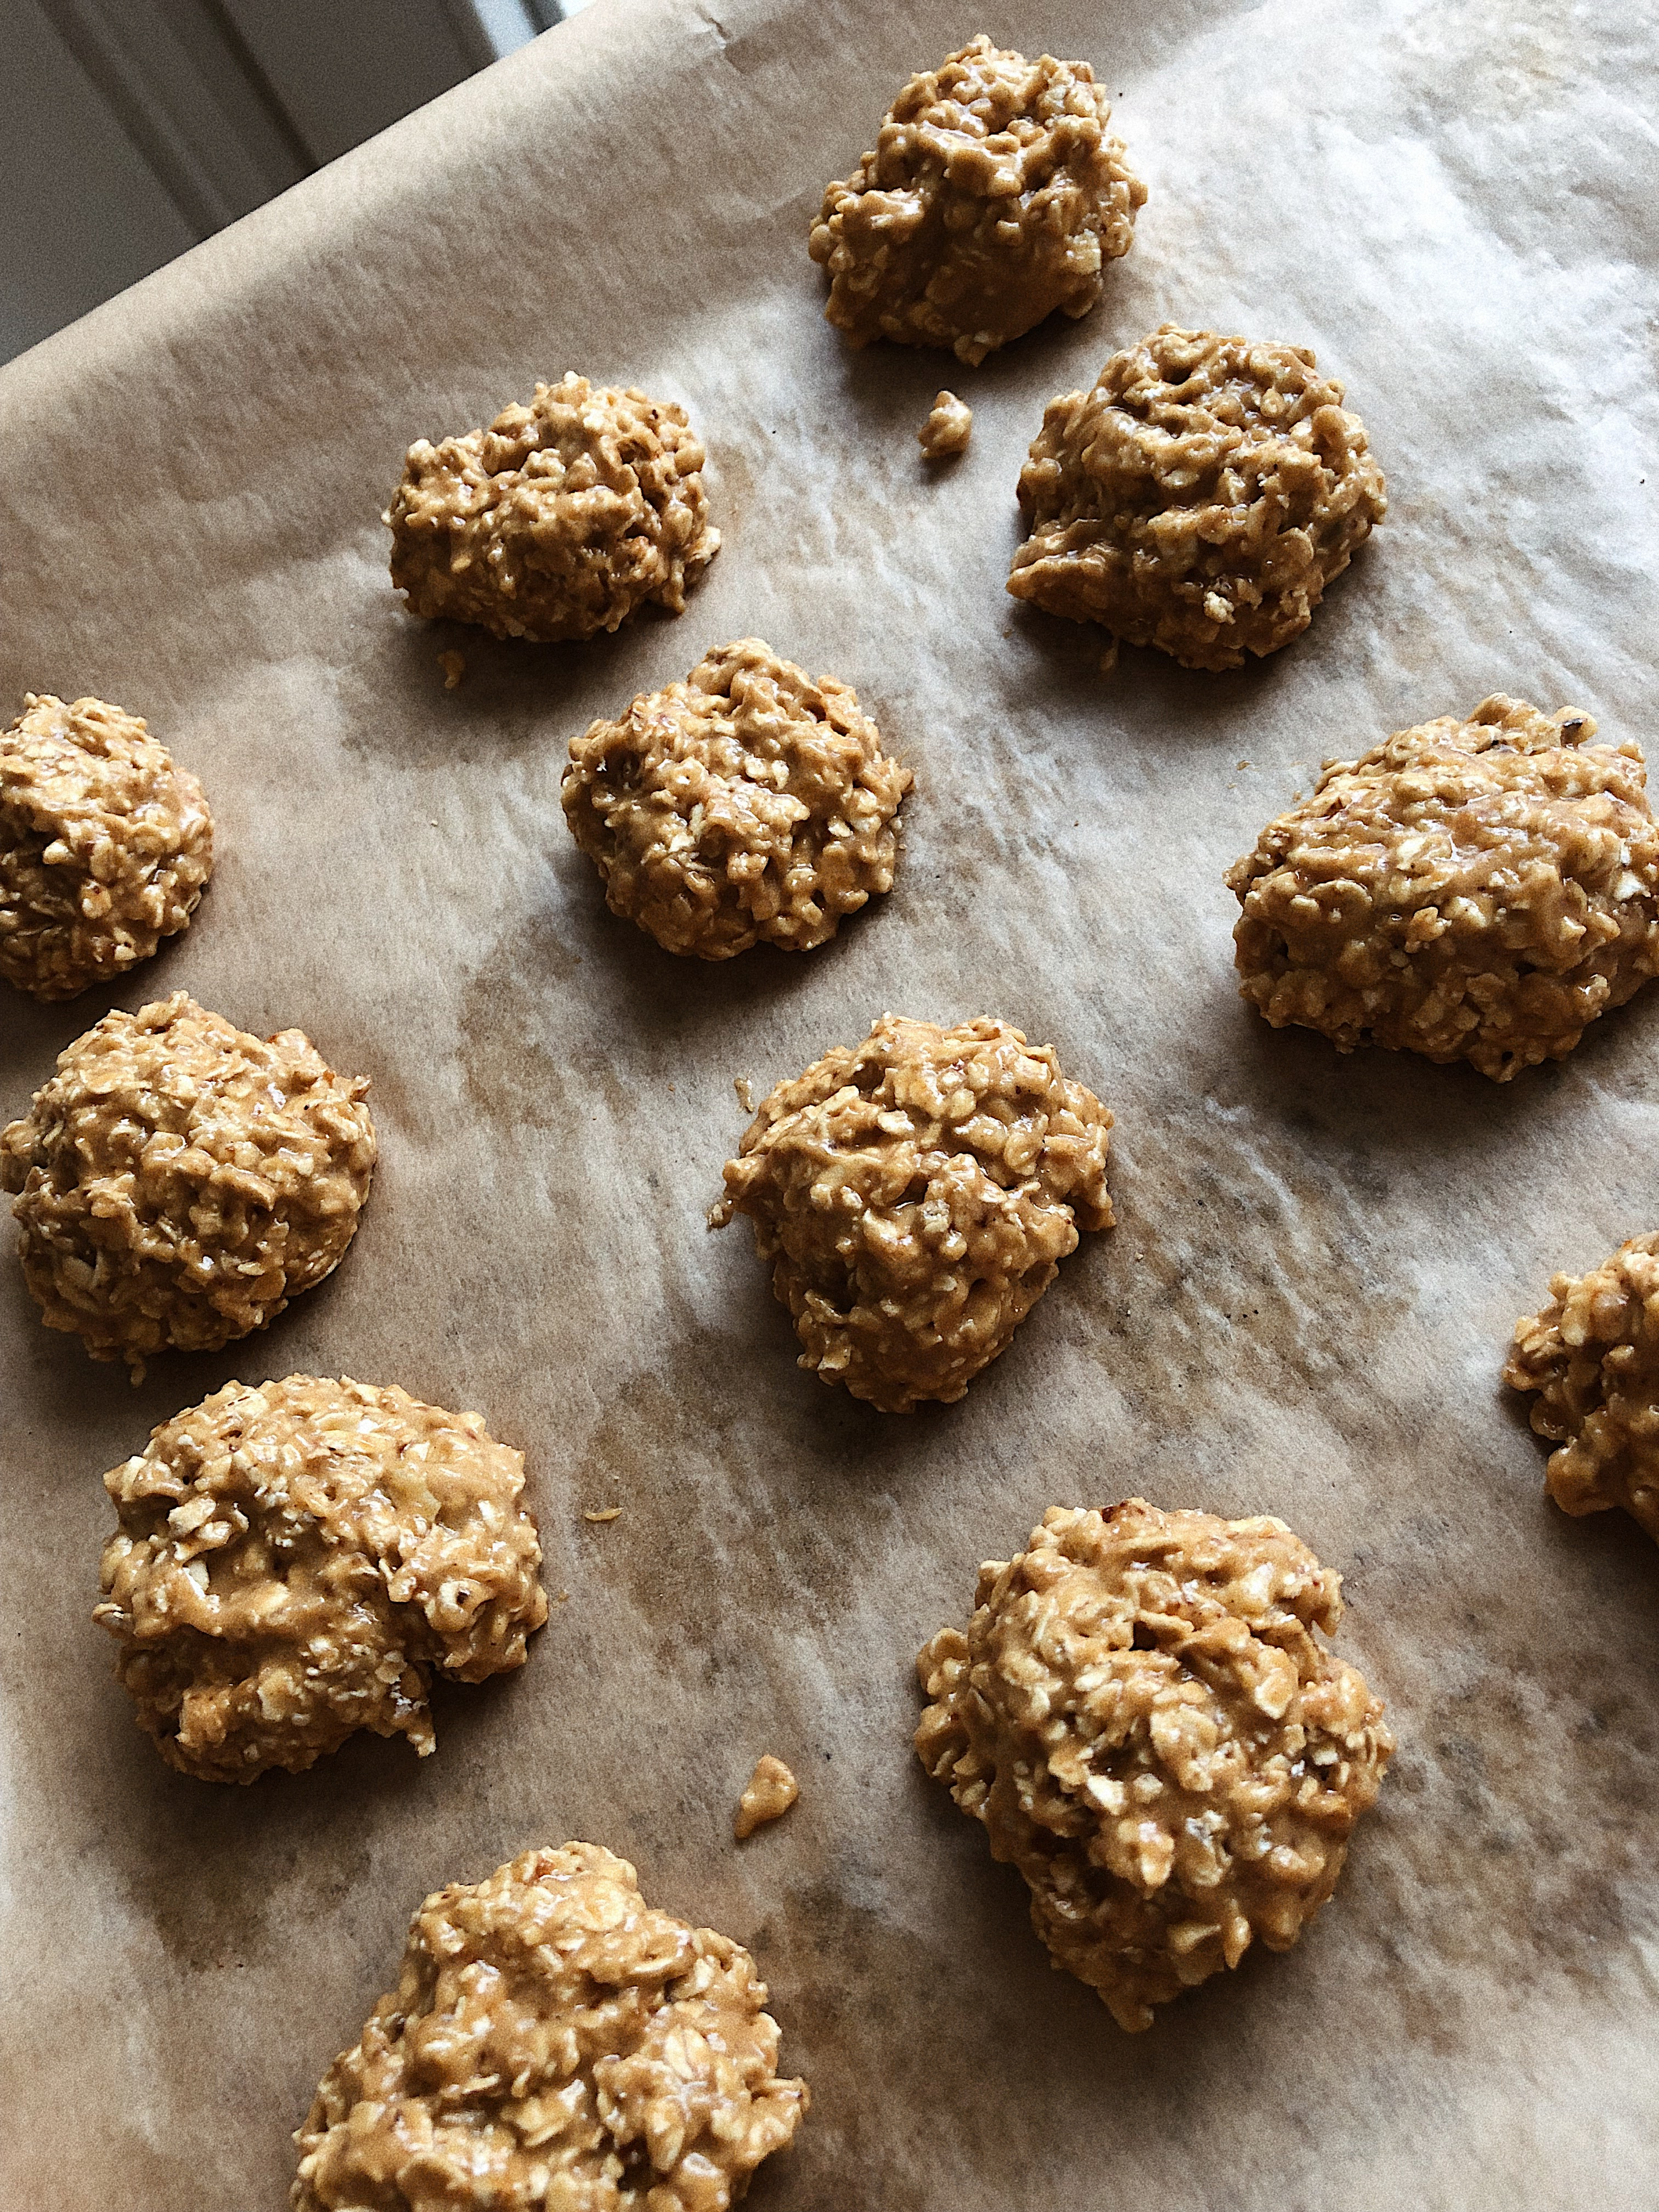 Salted Peanut Butter & Oat Breakfast Cookies